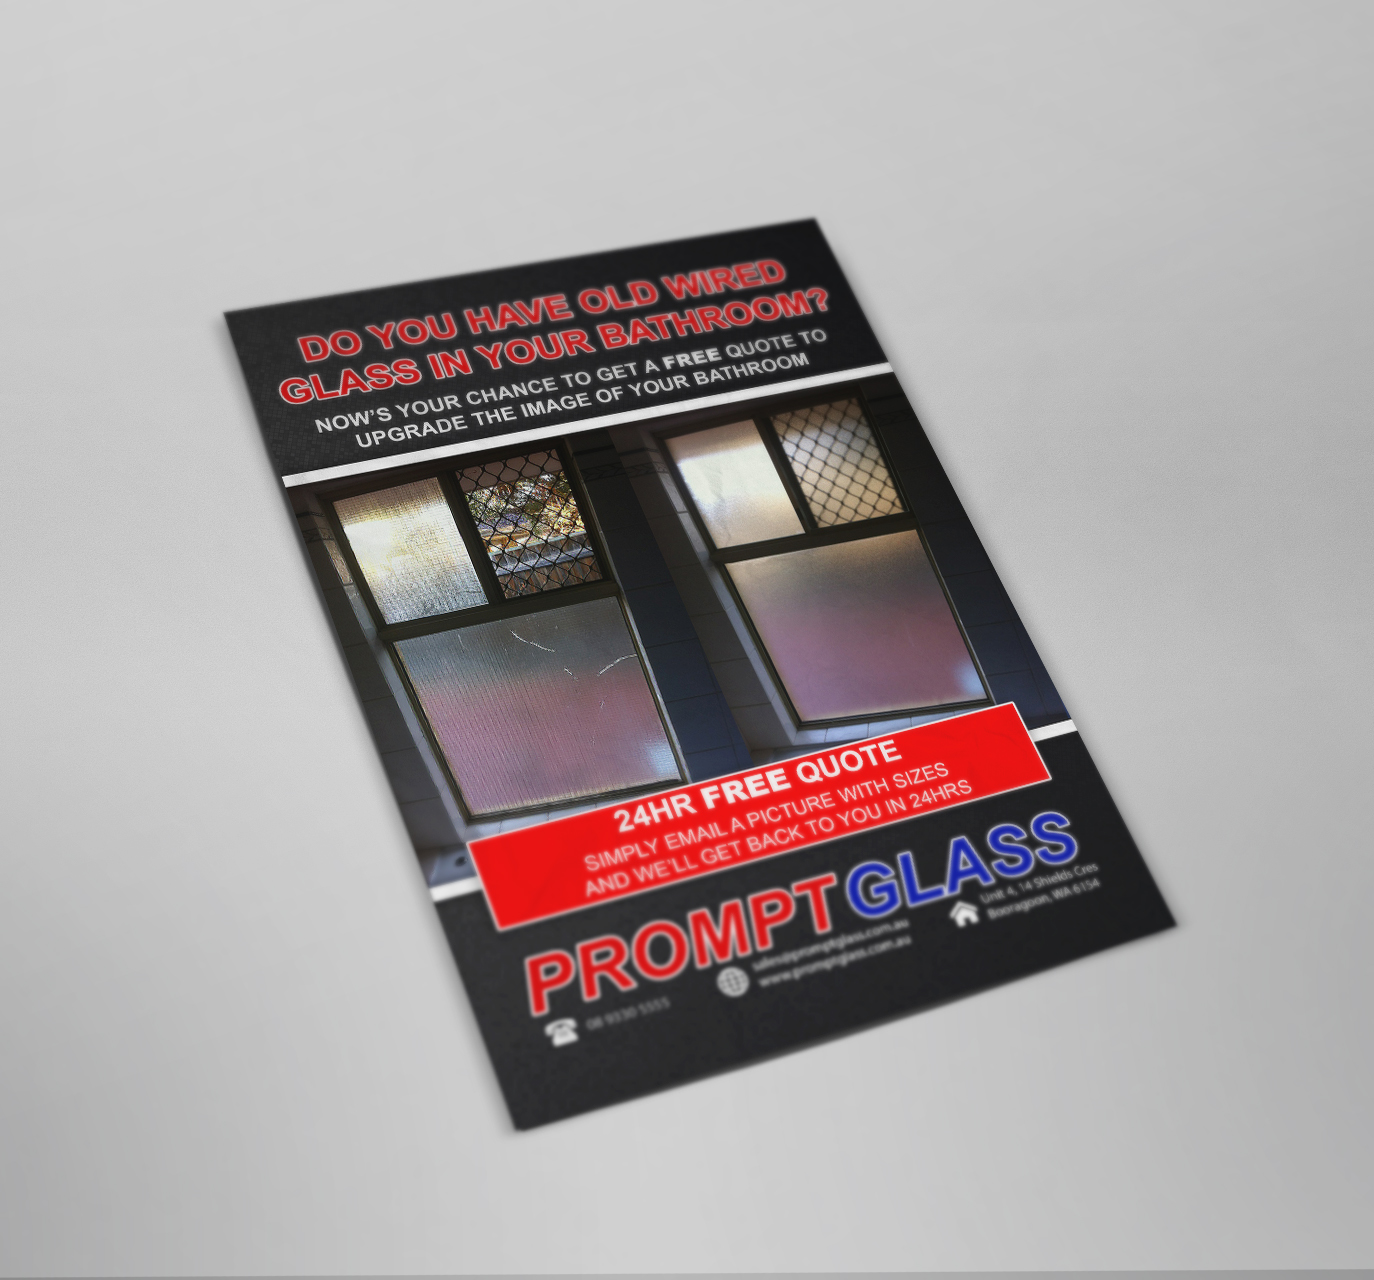 Prompt Glass Flyer Design